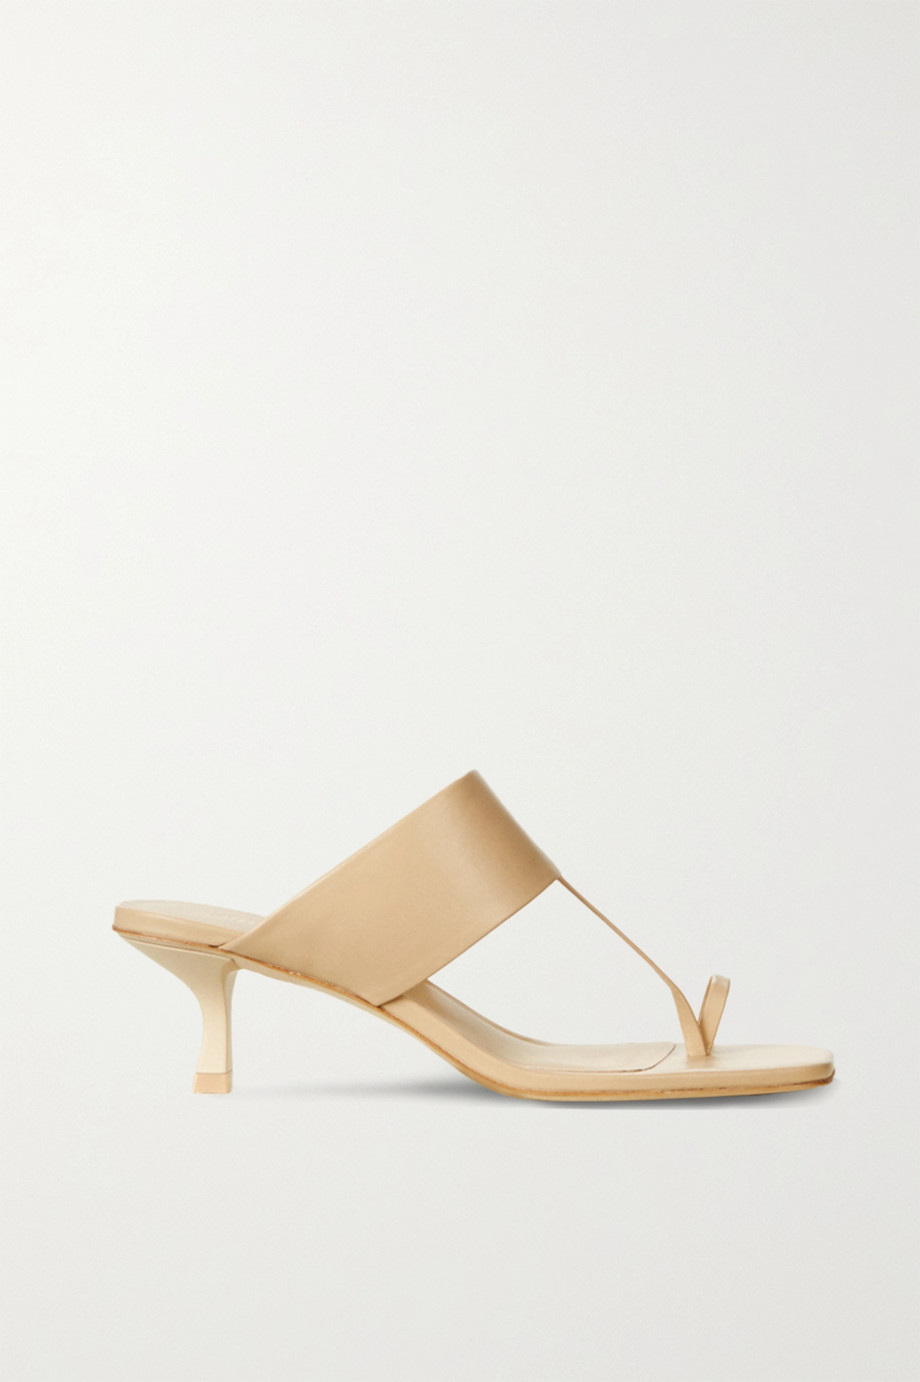 Cult Gaia Yvette leather mules